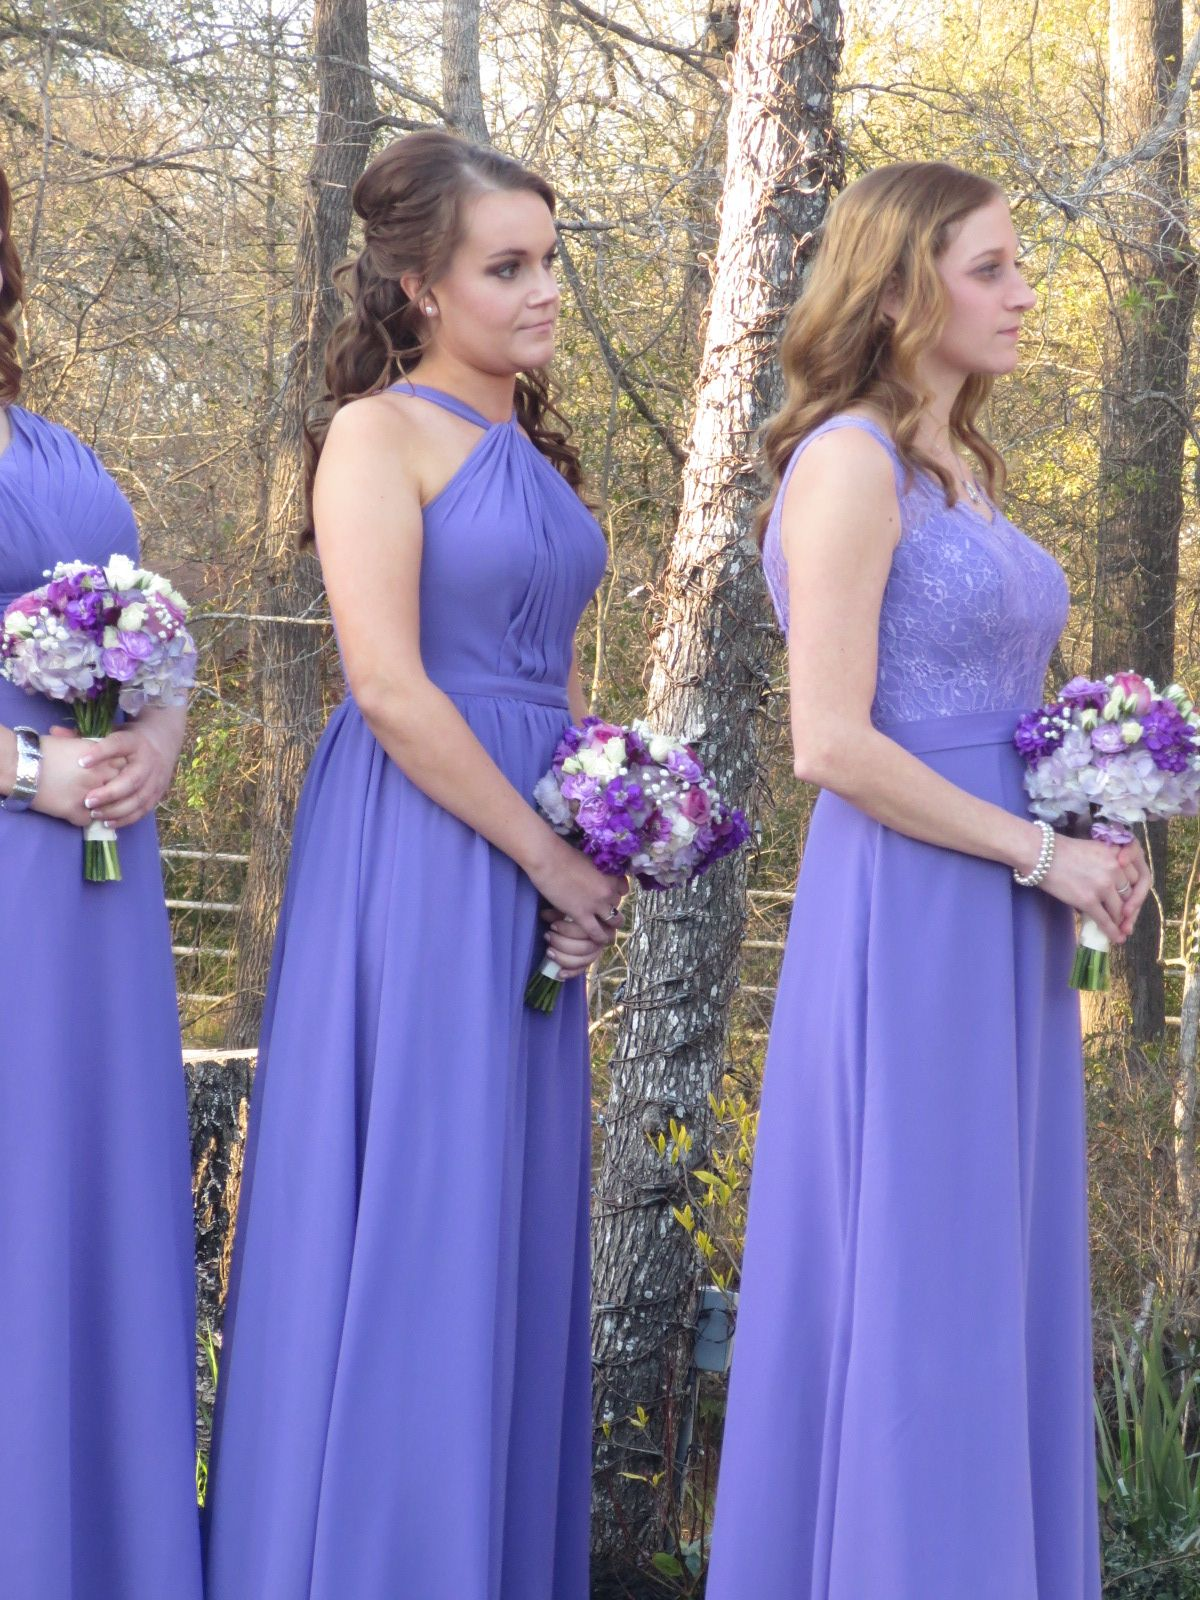 ARABELLA - Bridesmaid Dress | Wedding, Wedding dress and Weddings